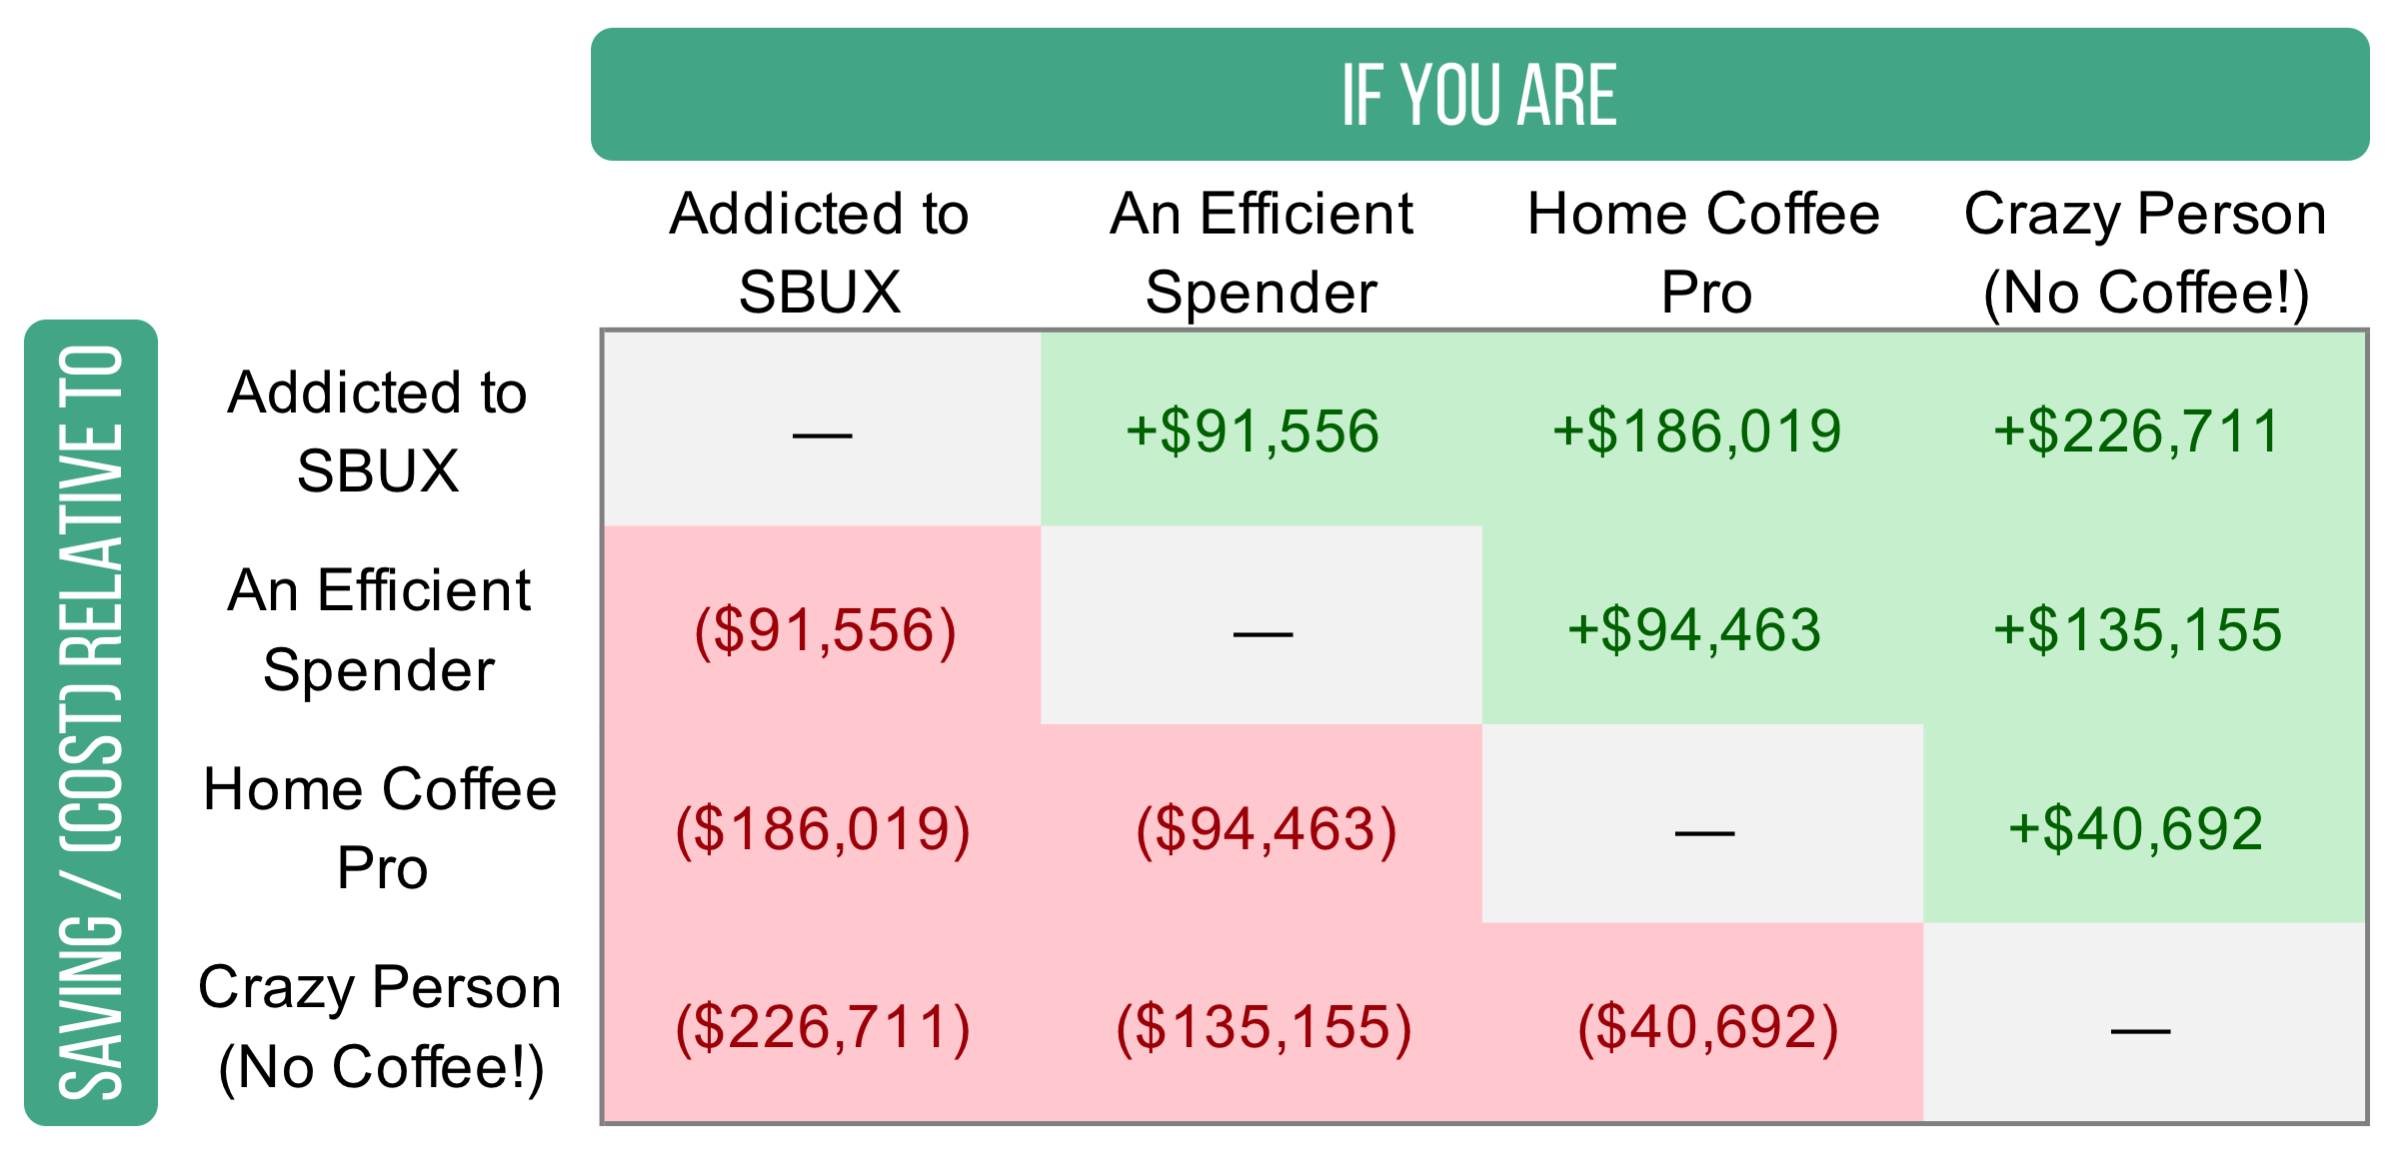 The total value represents how much more / (less) you could have in retirement, relative to the other scenarios.